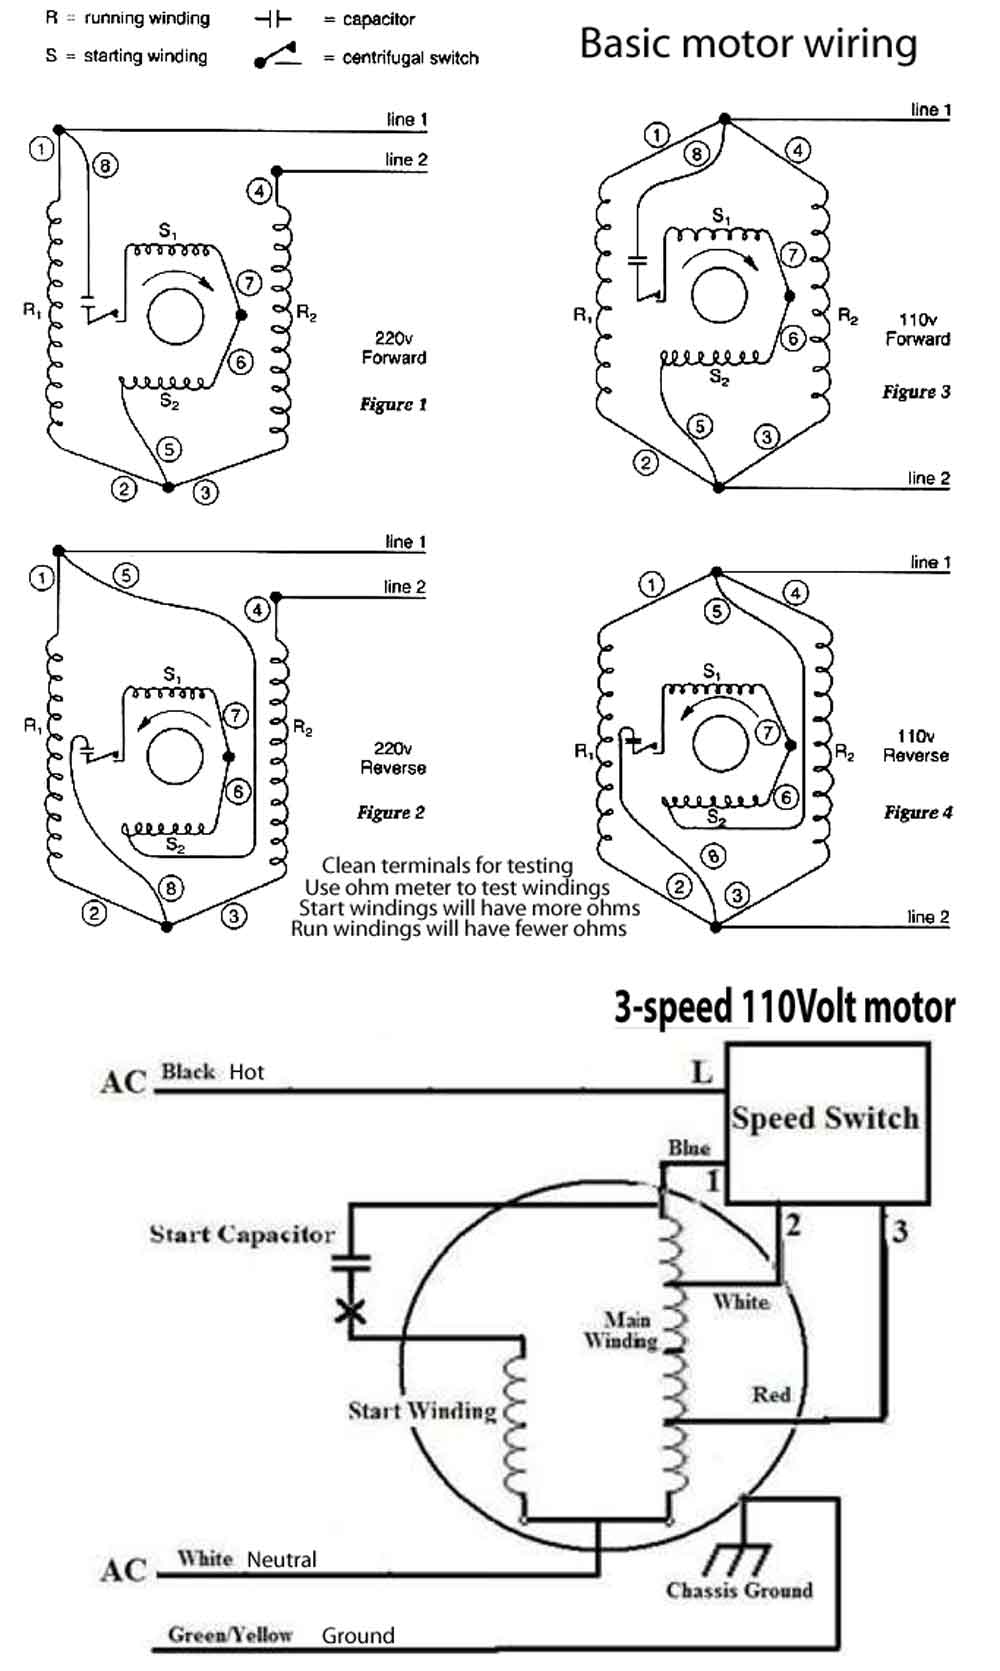 How To Wire 3 Speed Fan Switch Light With Rocker Wiring Diagram Motor